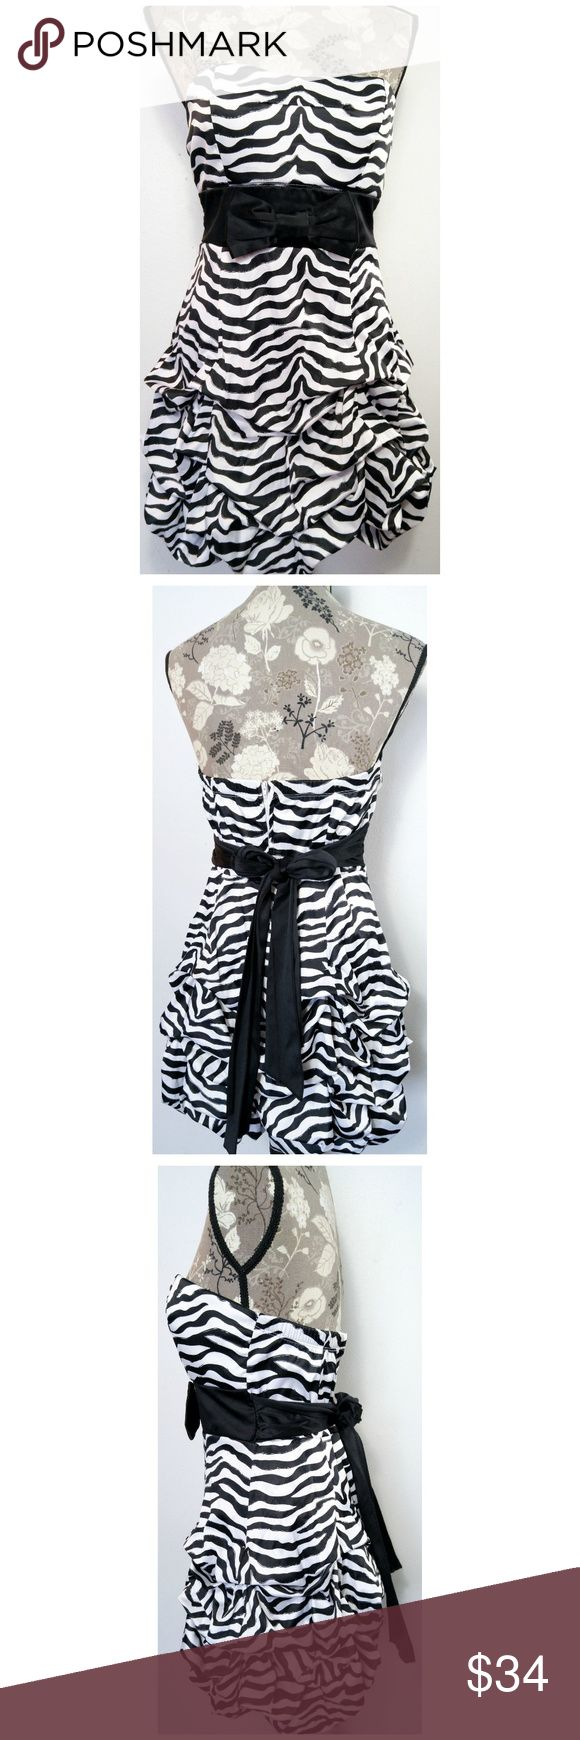 """Ruby Rox Dress Size 9 Zebra Stripes Strapless Prom Bust is lightly padded, Back zipper, ties at the waist, Skirt has the puckered balloon look. Dress is fully lined.  Across Bust 17"""" Waist 15"""" Across Length 28"""" from center back From a smoke-free home Excellent Condition, No rips, tears, or stains. (254) Ruby Rox Dresses"""